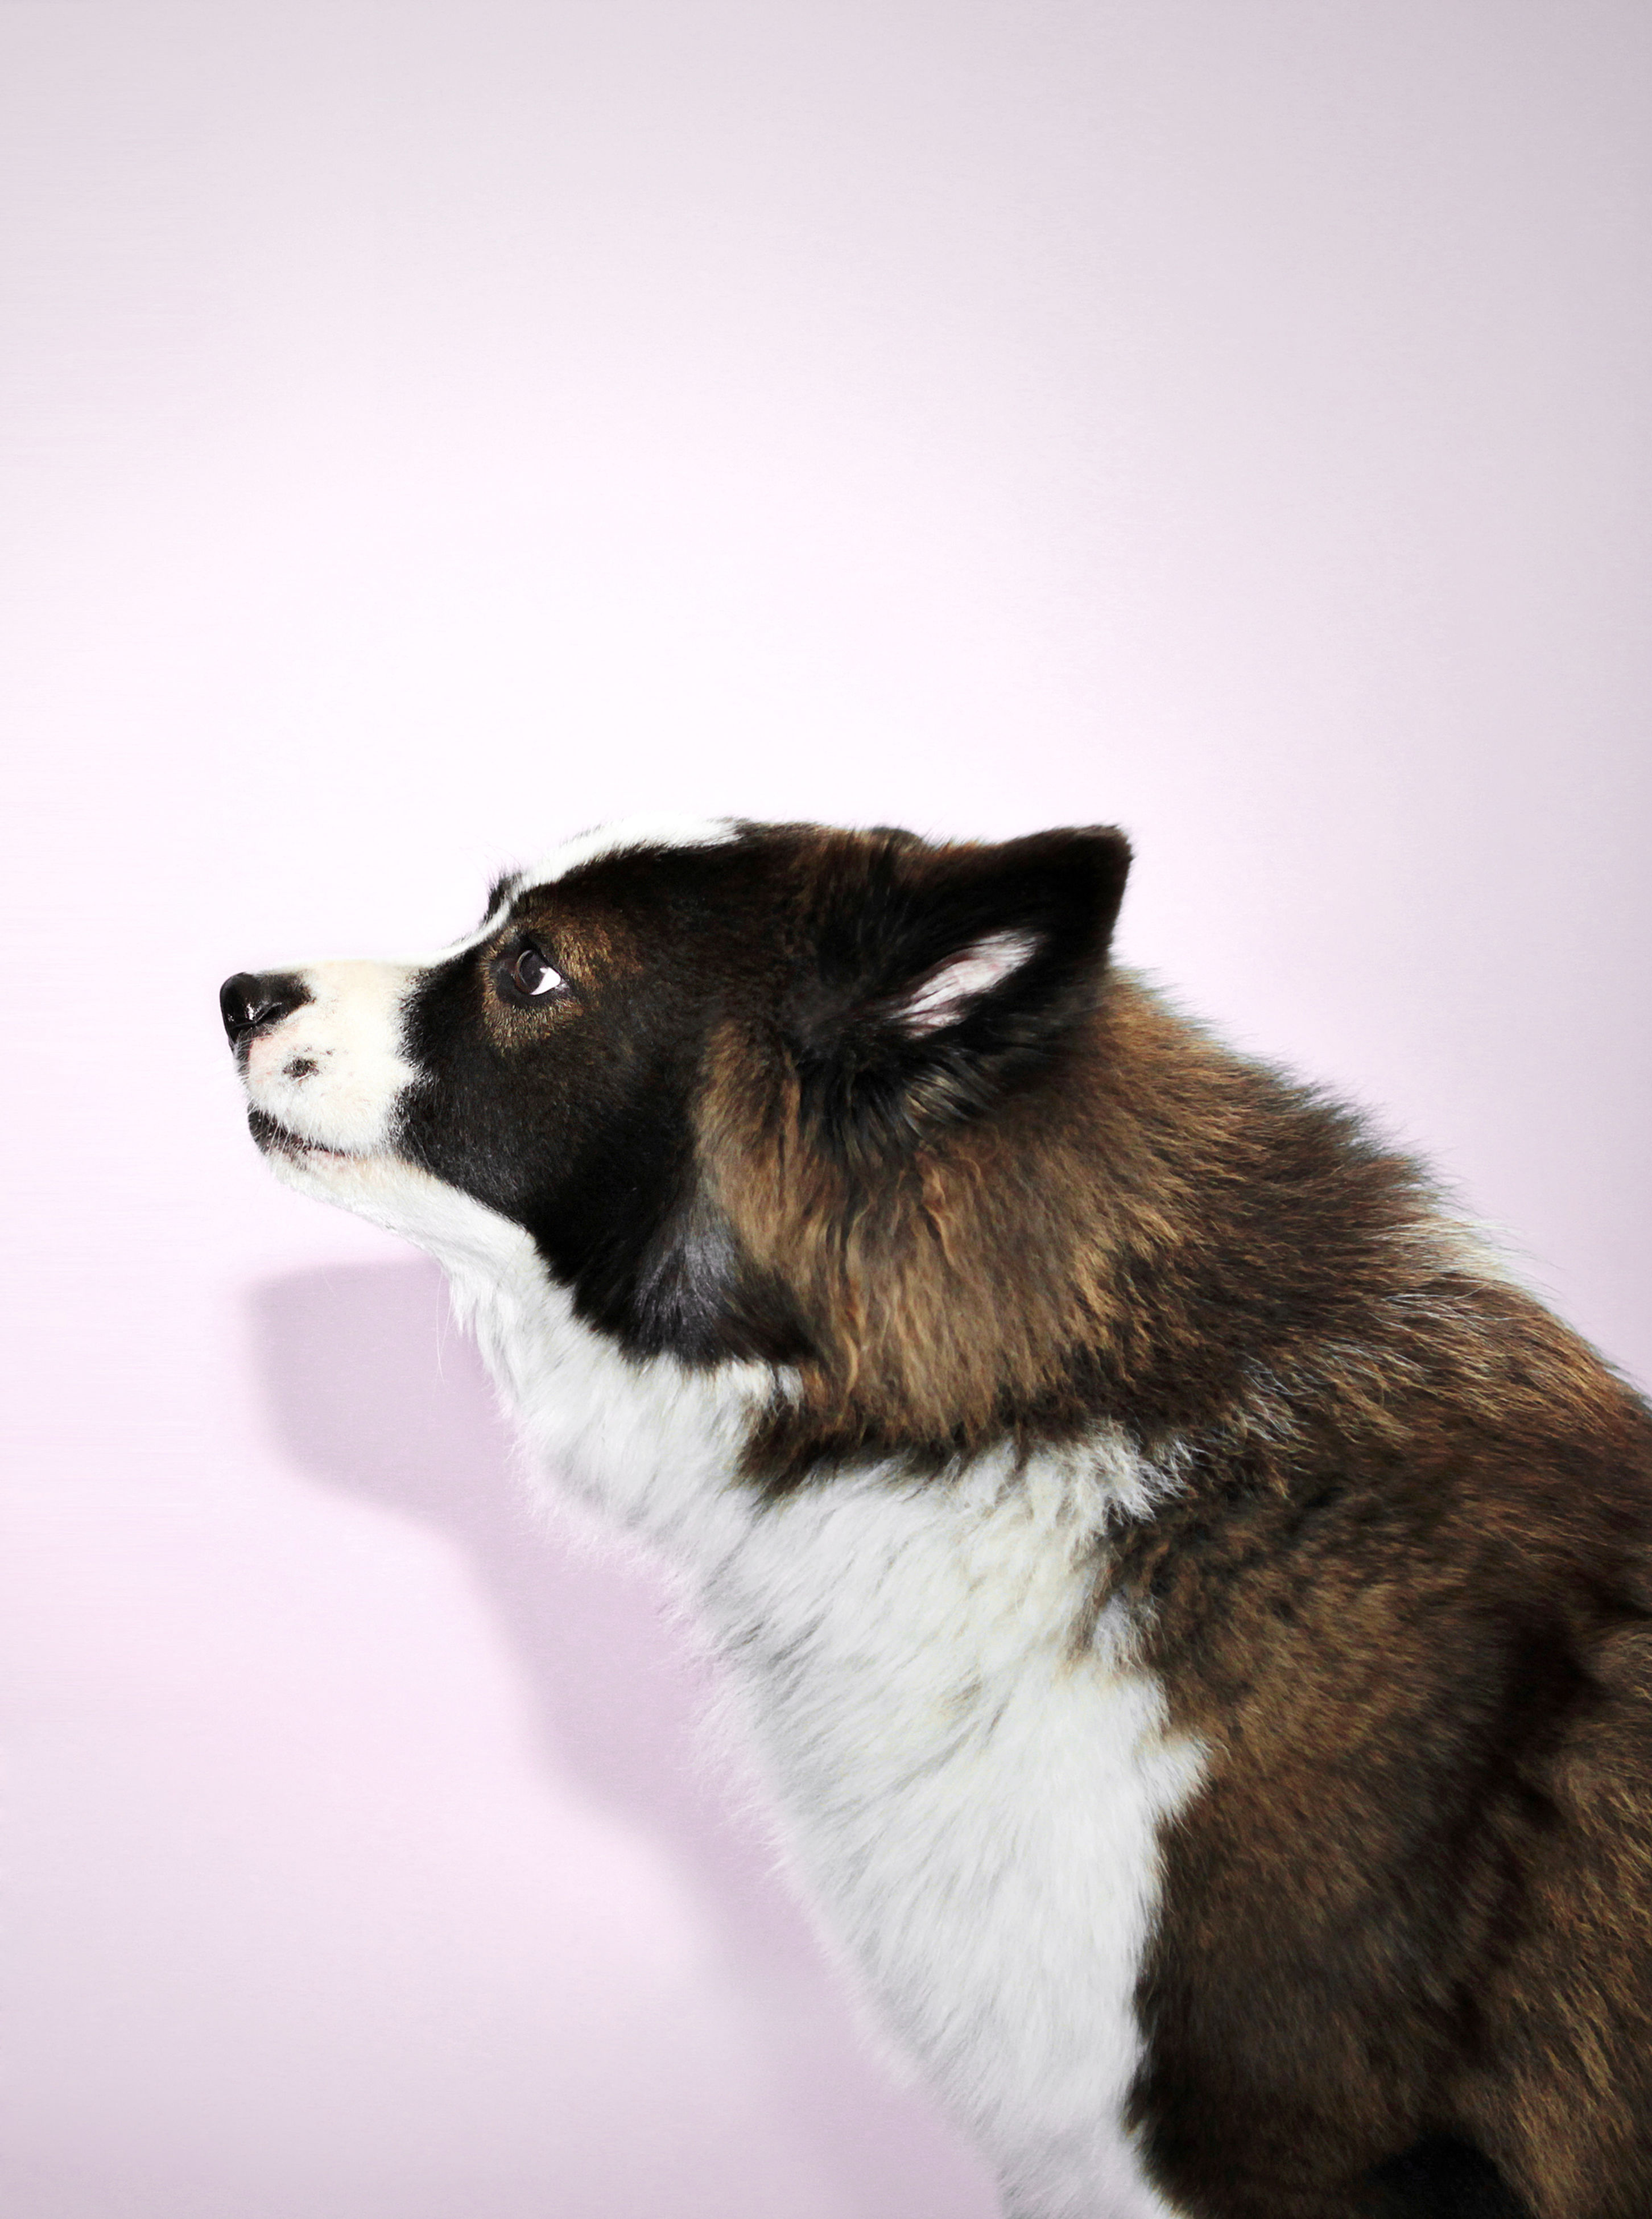 dog, pets, one animal, domestic animals, studio shot, animal themes, mammal, side view, white background, no people, portrait, close-up, day